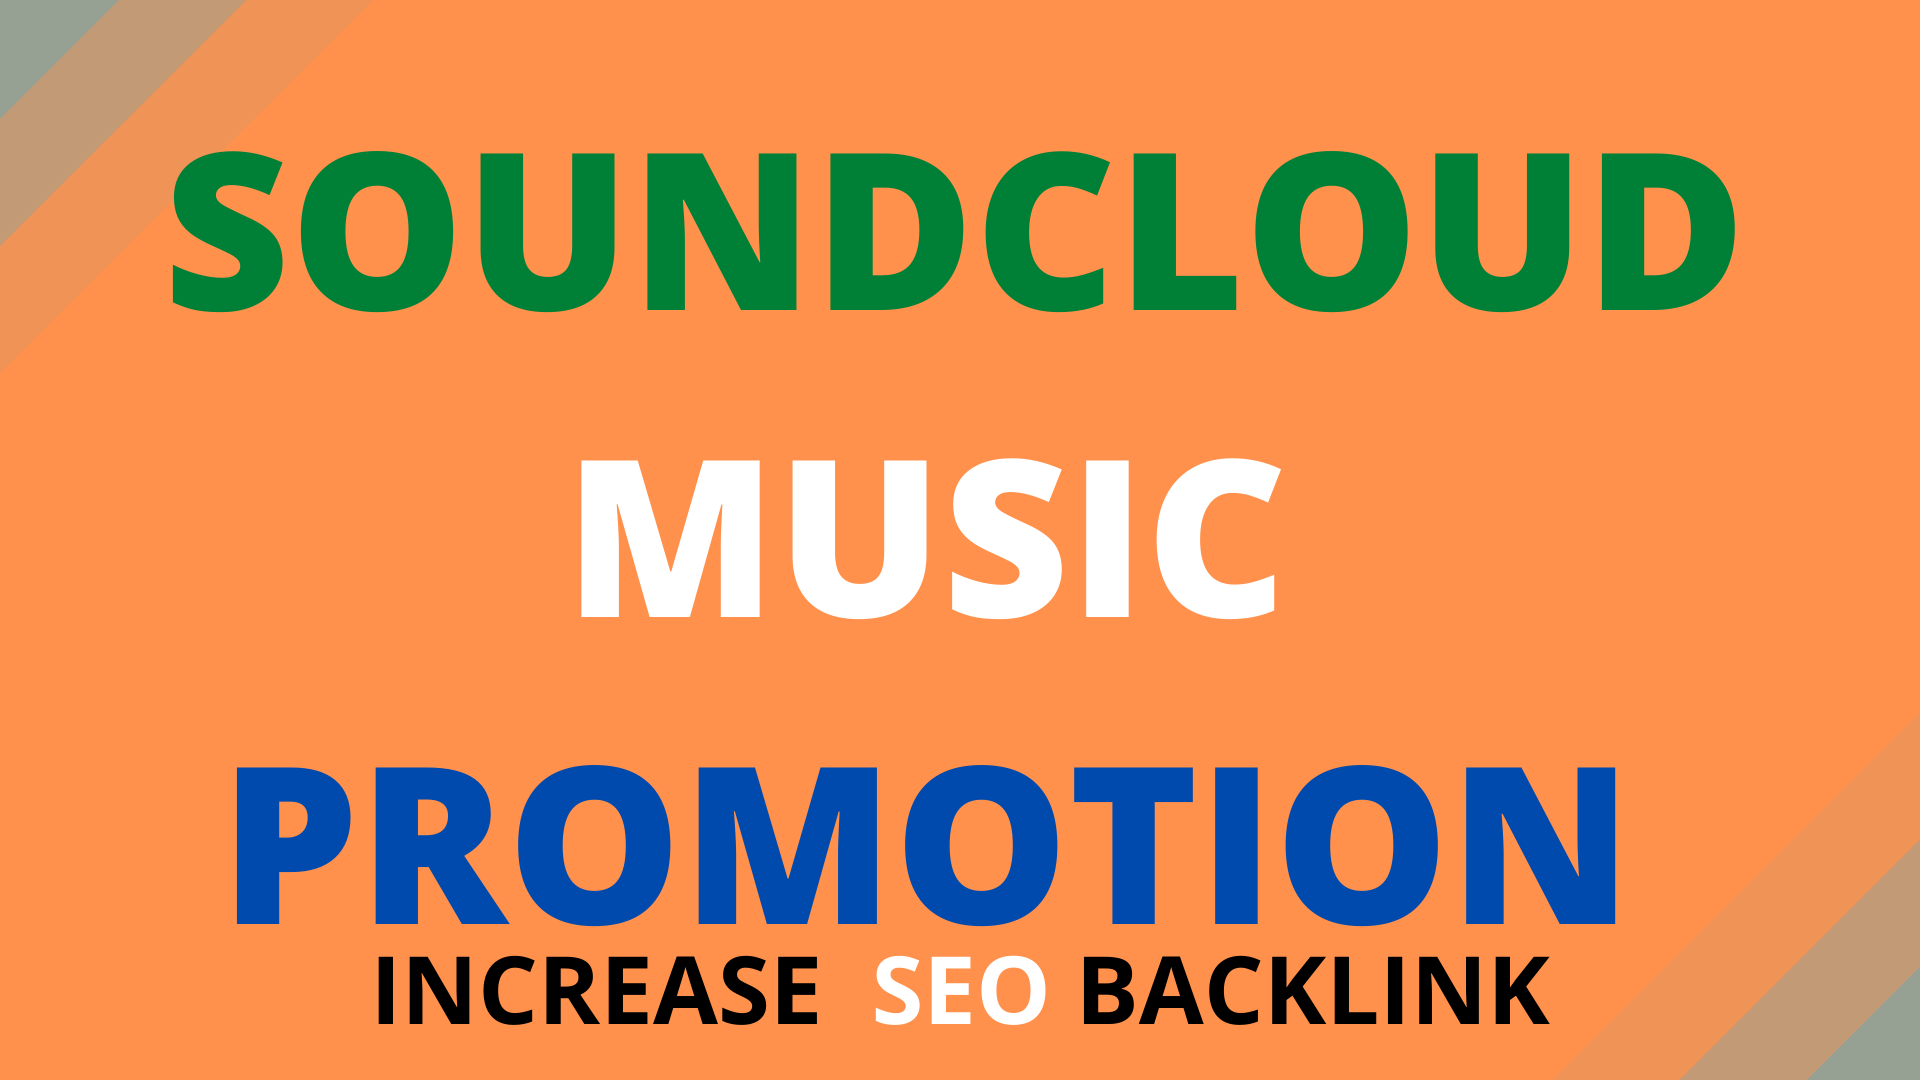 I will build SEO backlinks for music promotion